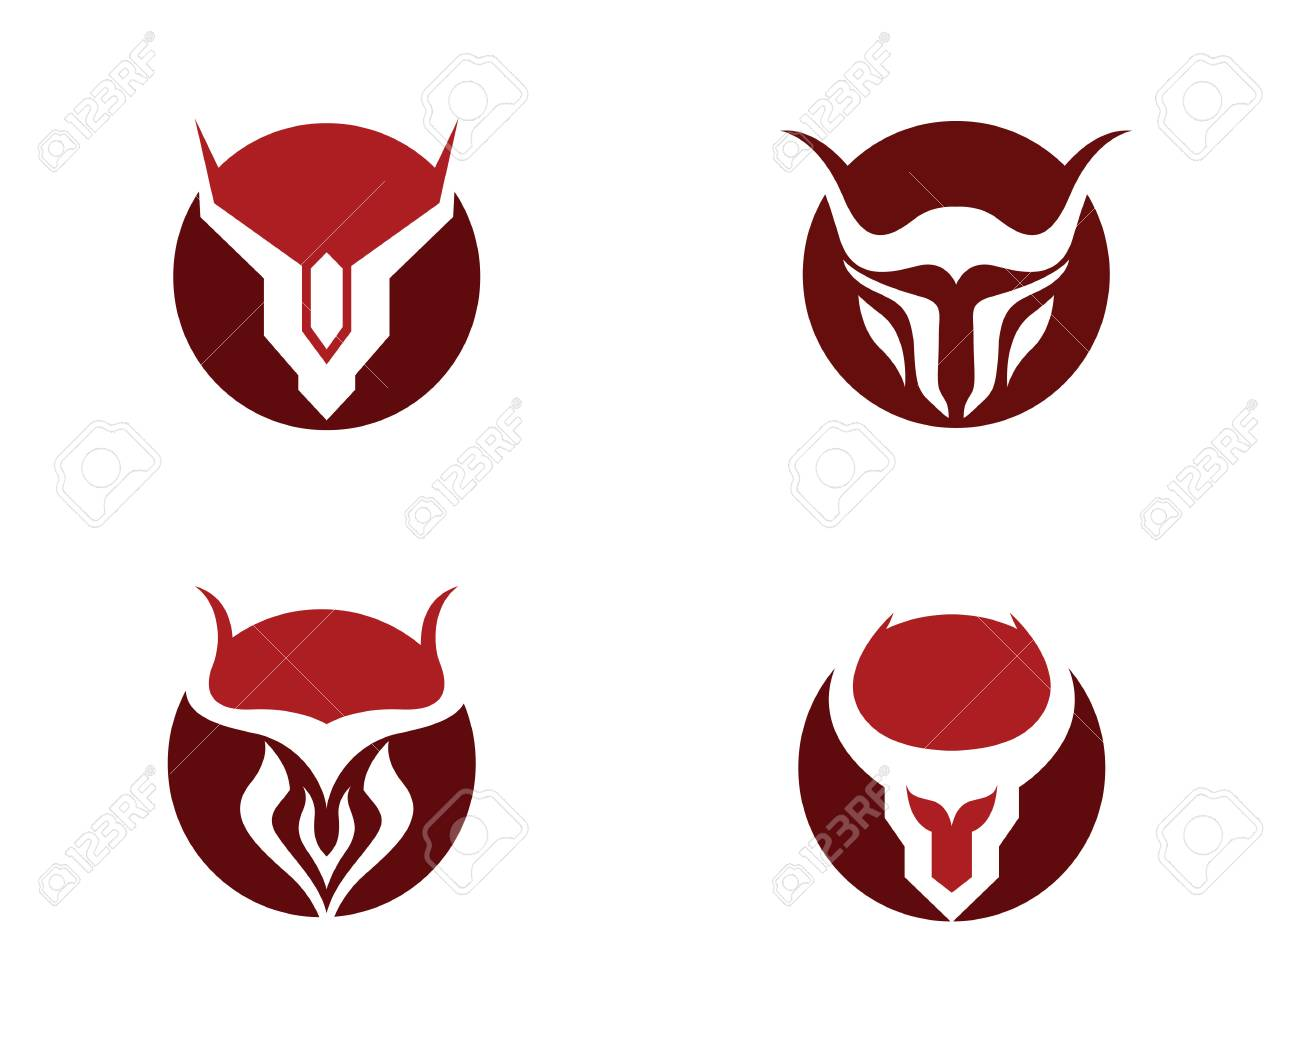 taurus logo template royalty free cliparts vectors and stock rh 123rf com taurus logo png taurus logo fonts